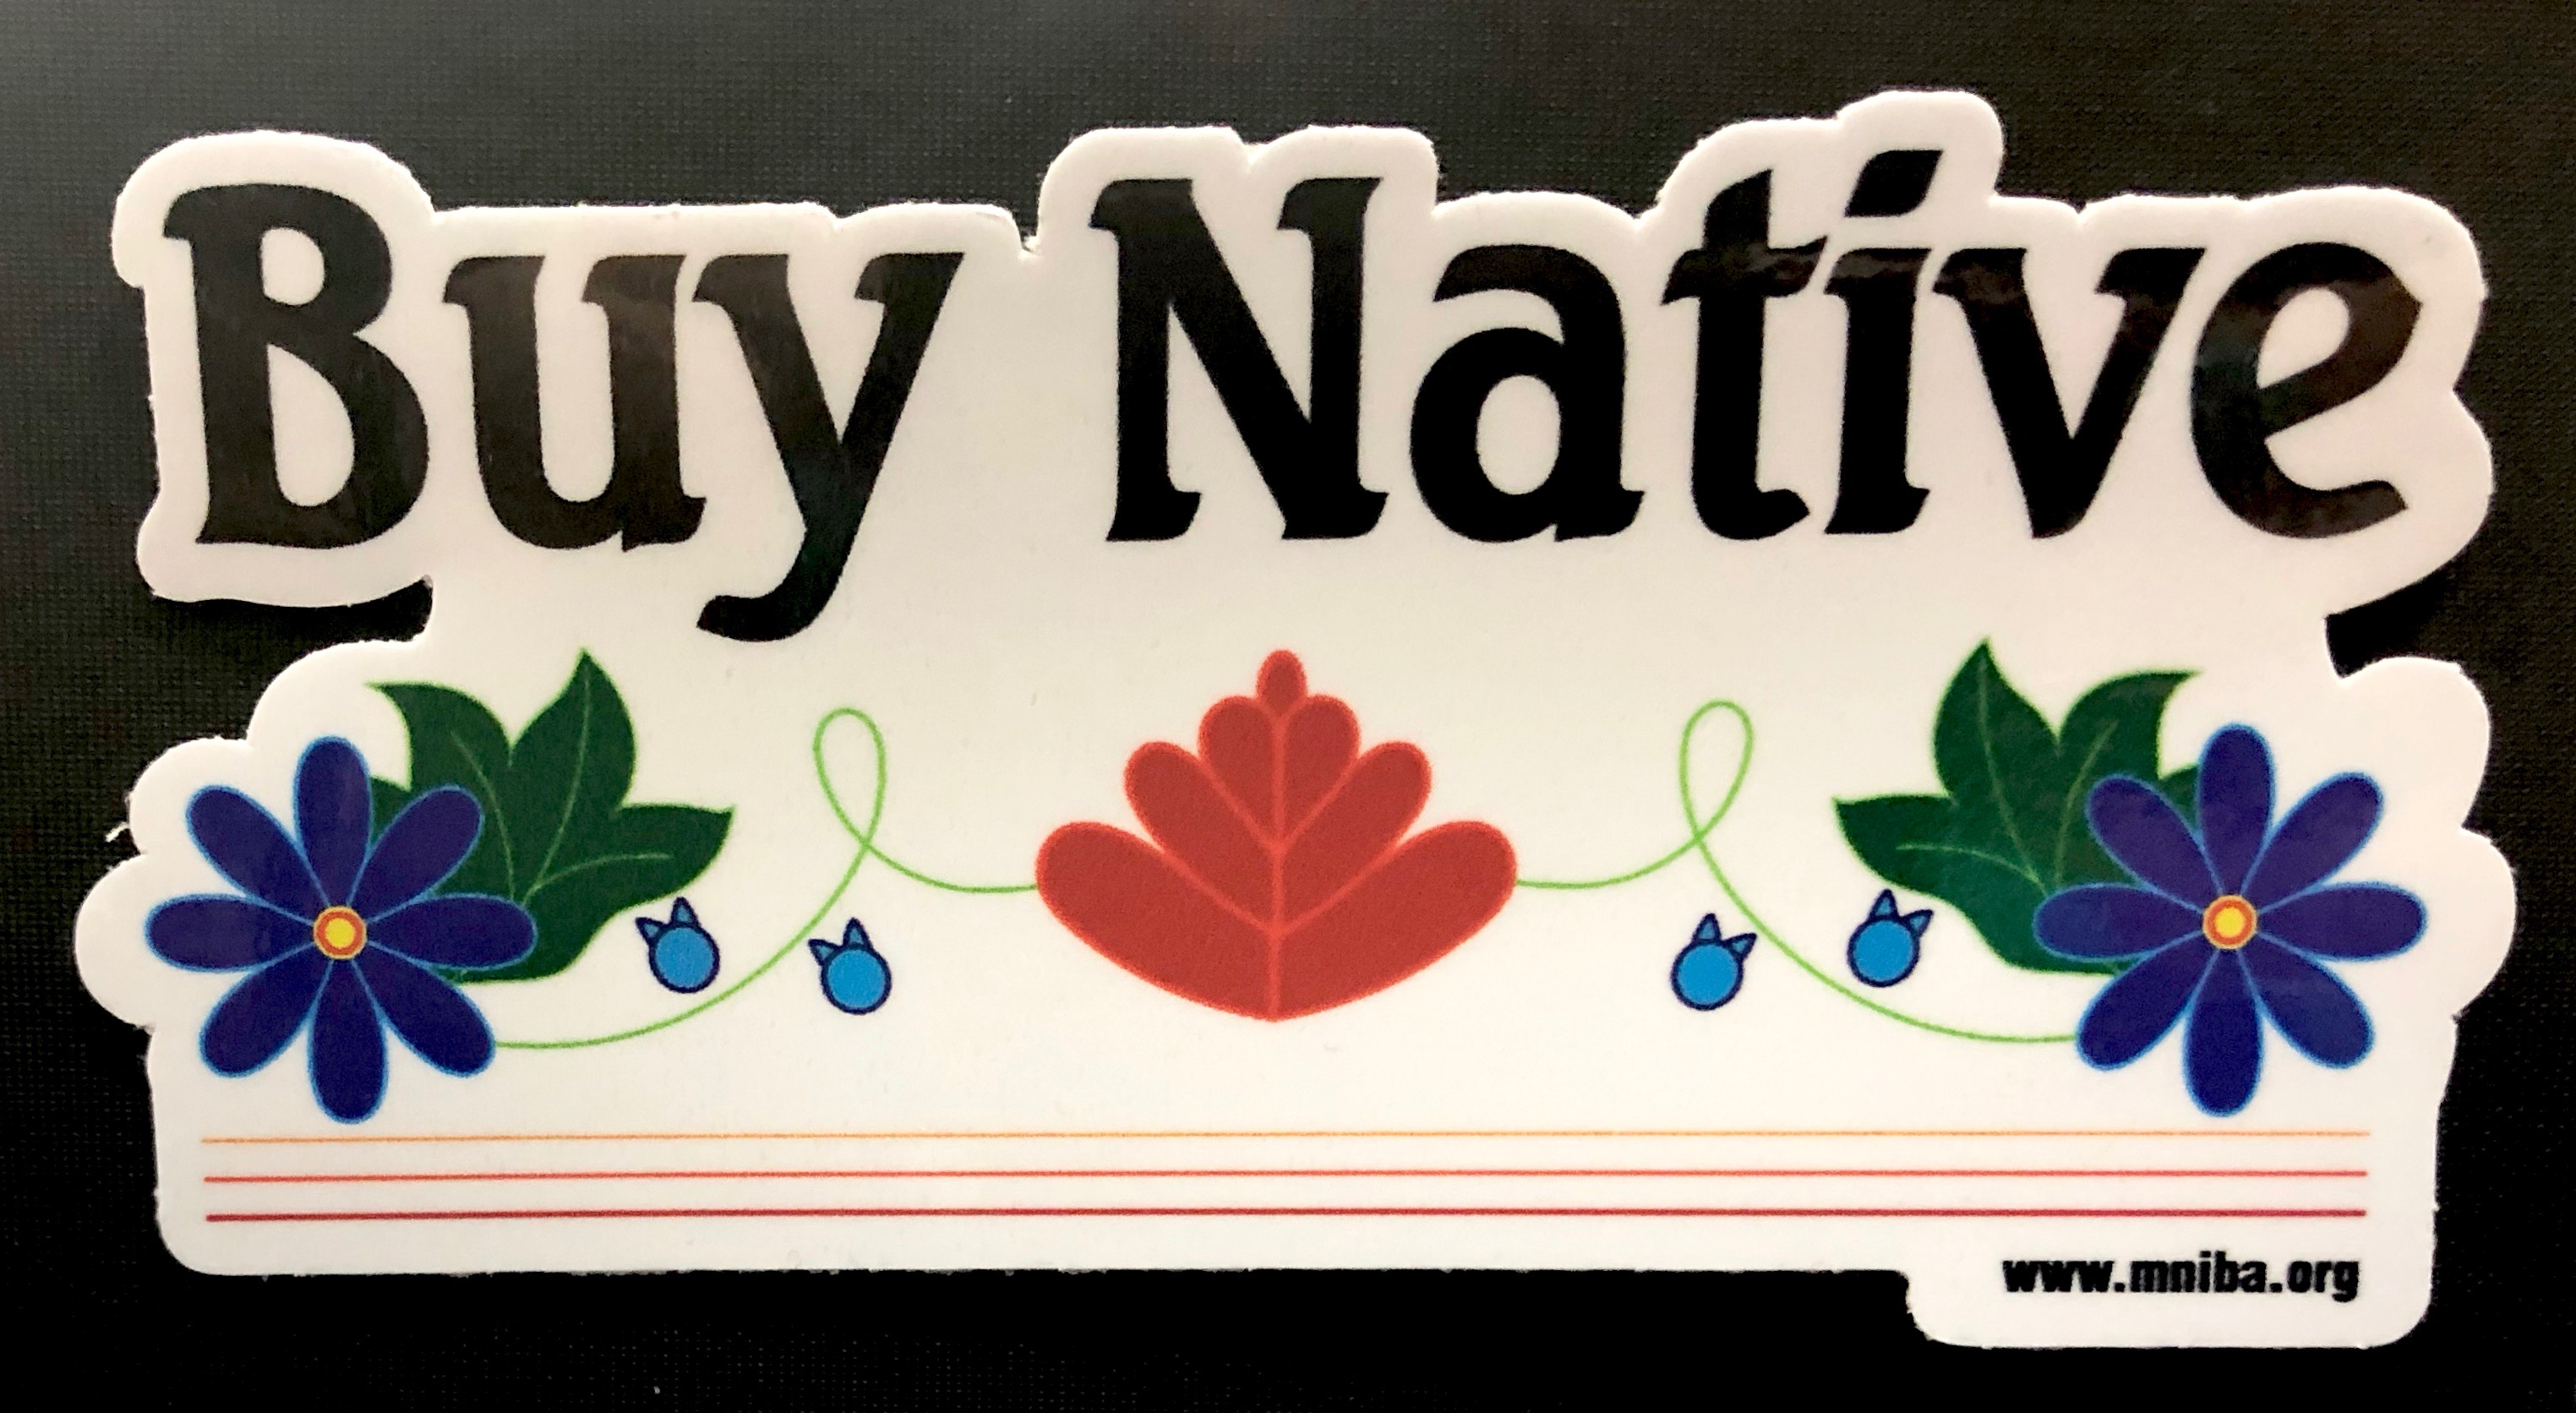 Buy Native Floral Die Cut Sticker